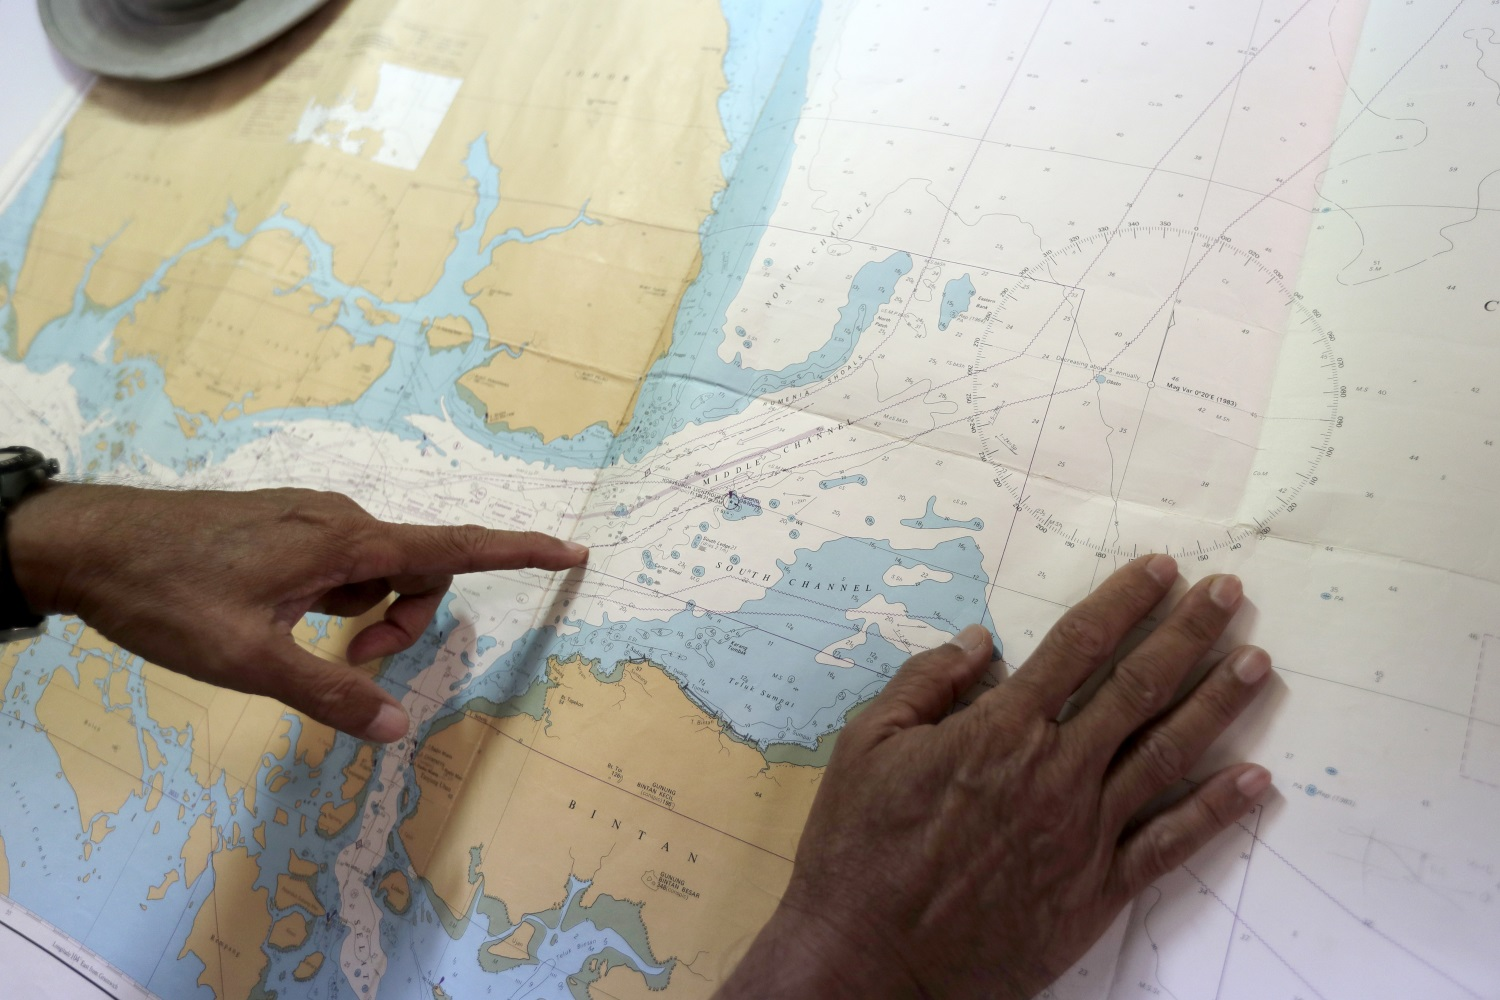 Tan Hua Chiow, a retired Singapore naval officer, shows a naval chart and explains to The Associated Press the flow of traffic at sea around the Strait of Singapore on Aug. 22, 2017, in Singapore. (Wong Maye-E/AP)